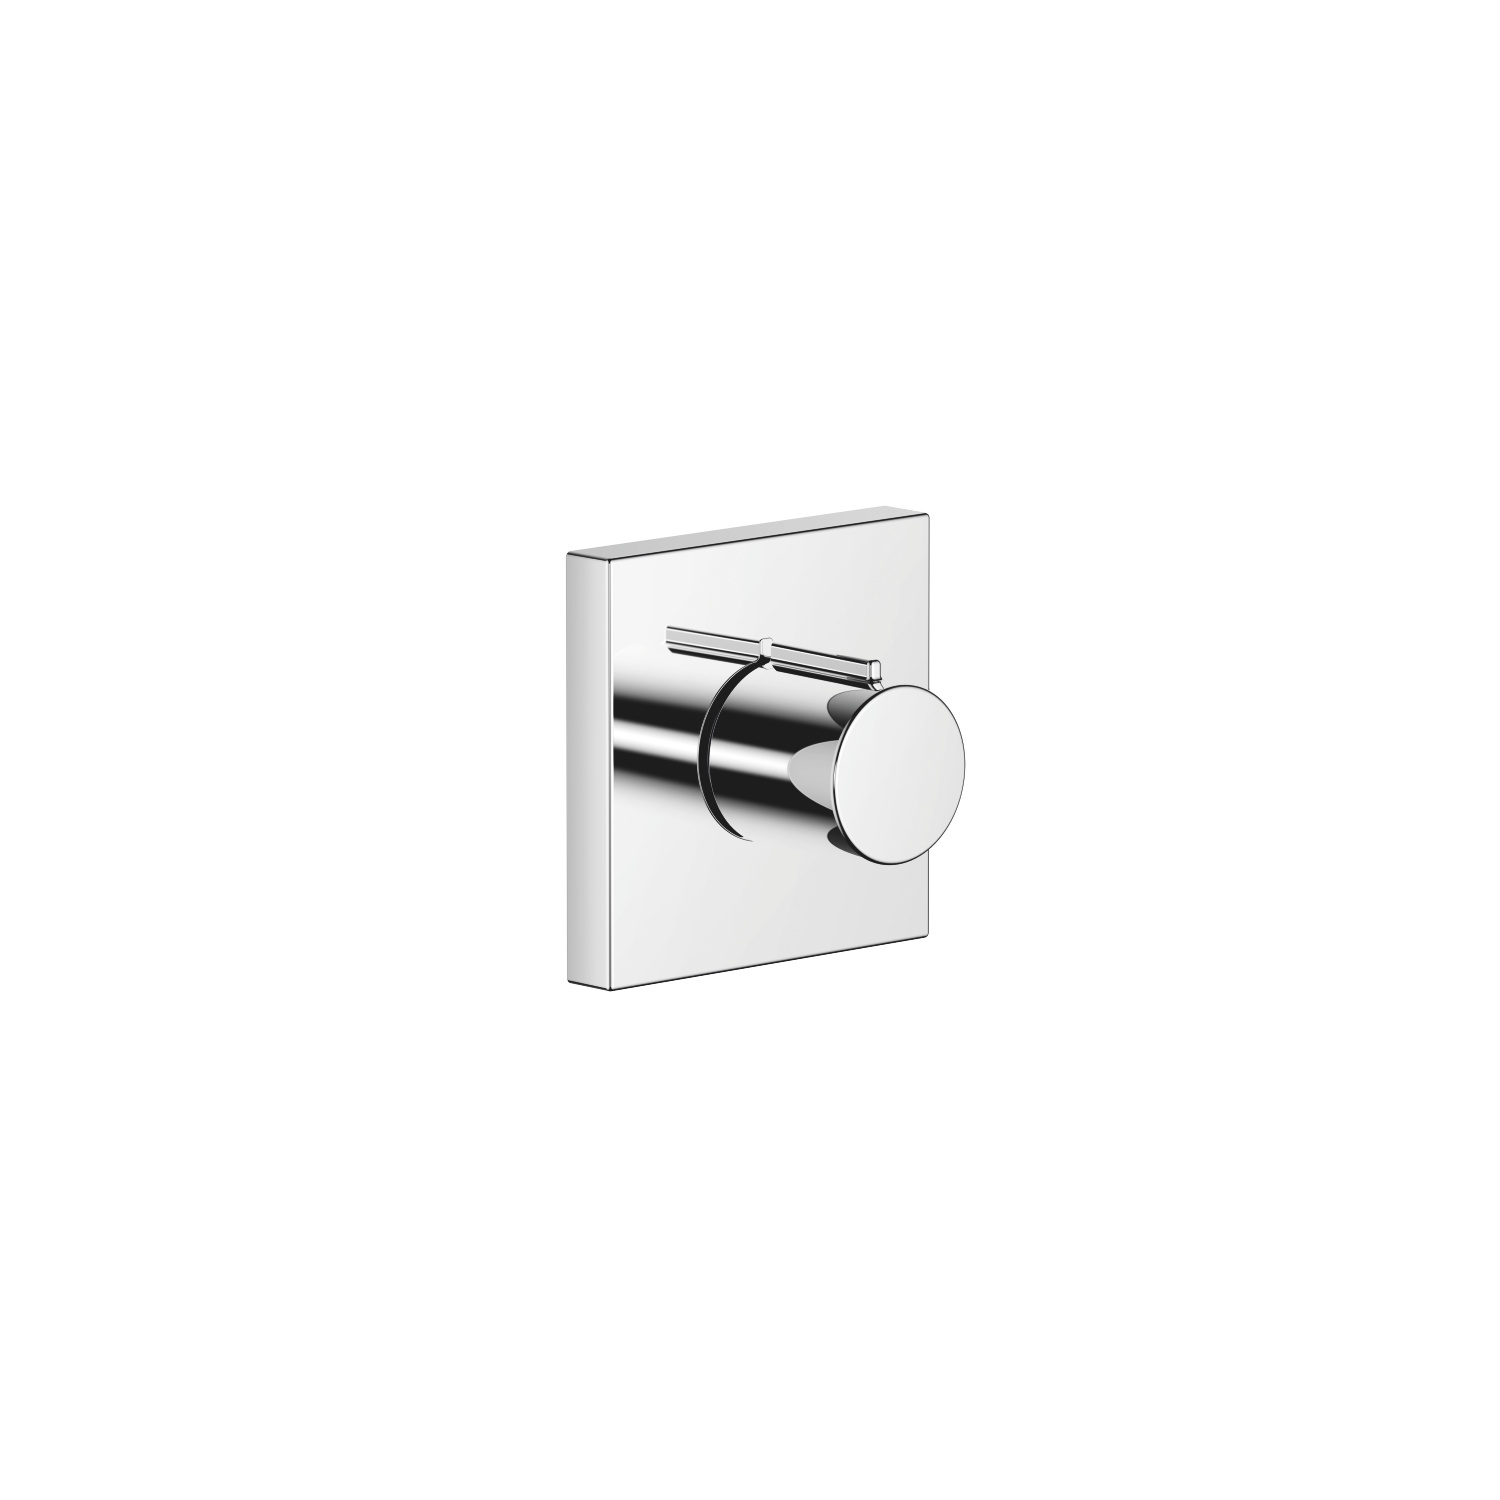 "Wall valve anti-clockwise closing 1/2"" - polished chrome"